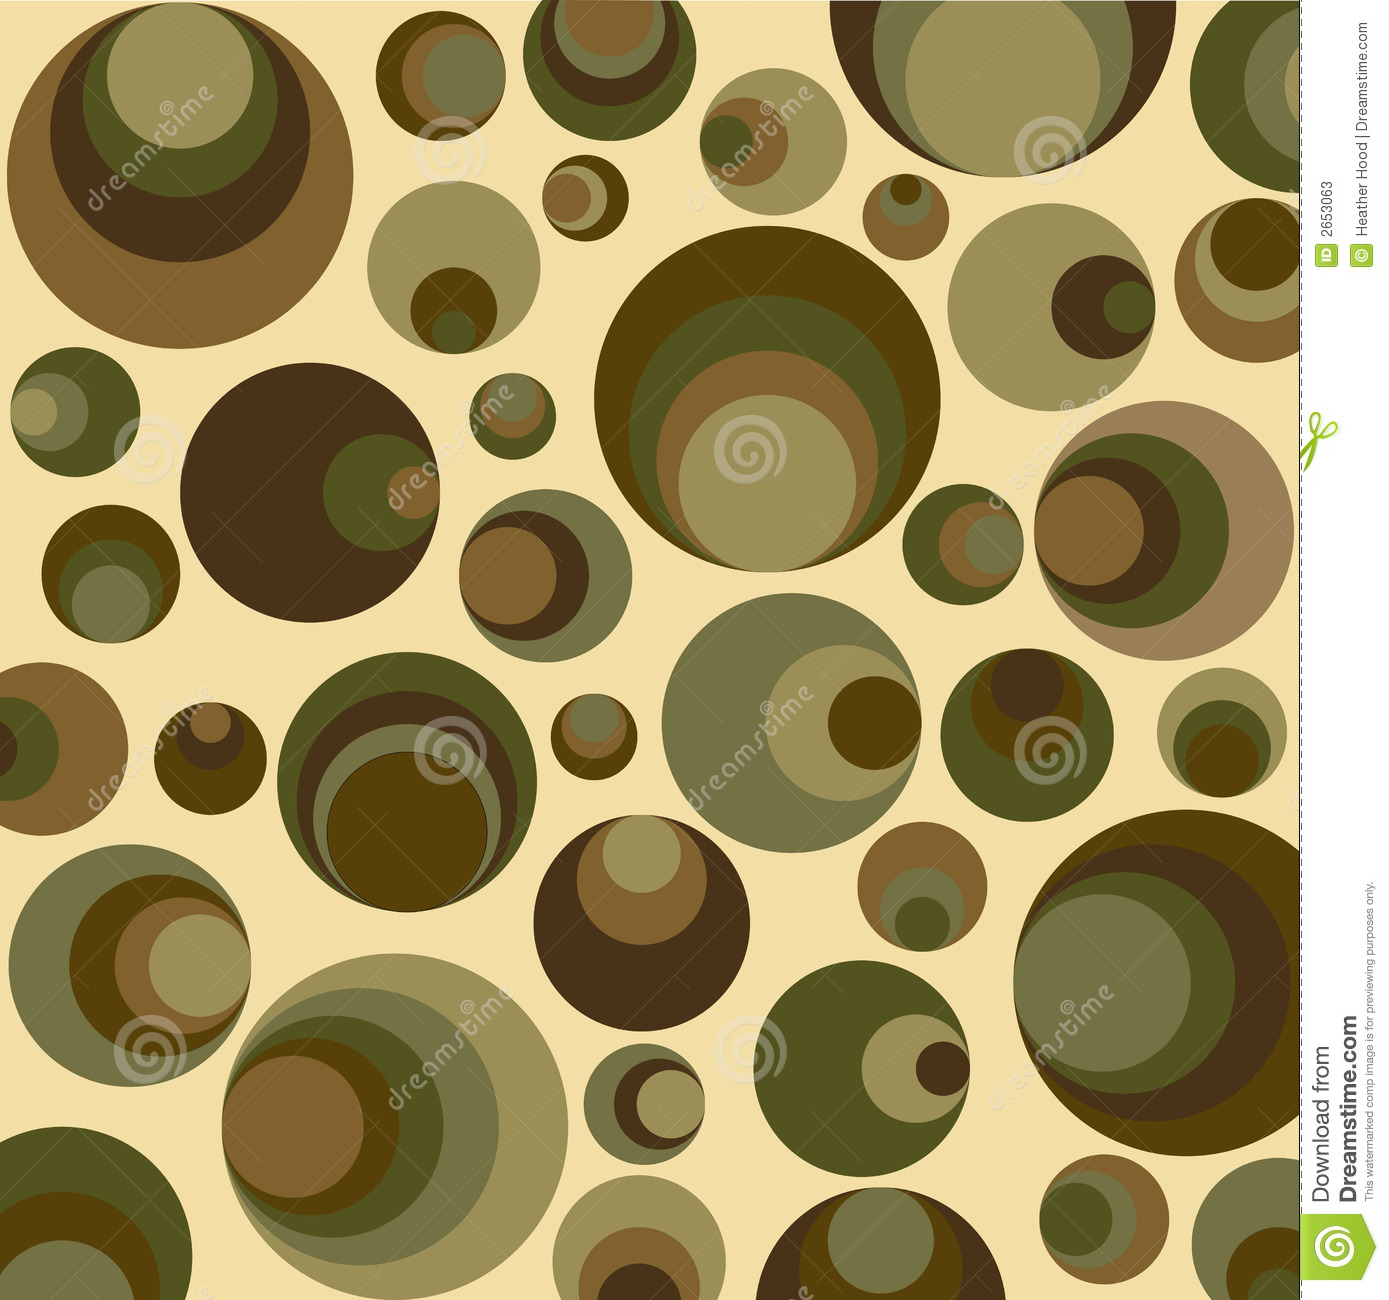 Download Wallpaper Brown And Green Gallery